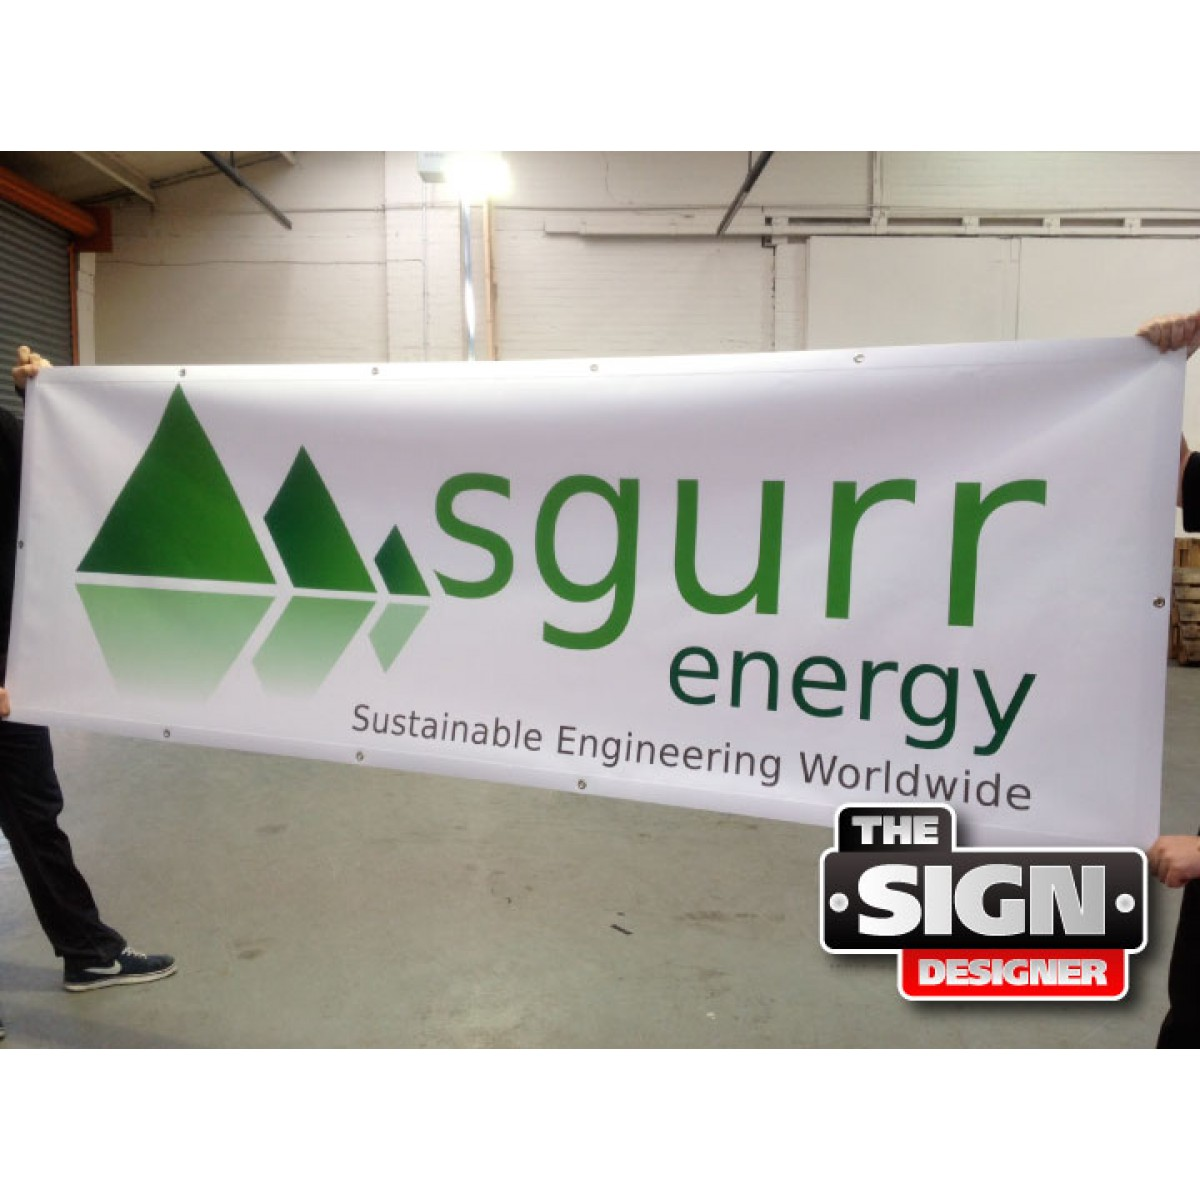 Printed Vinyl Banners - Design Your Own! - The Sign Designer